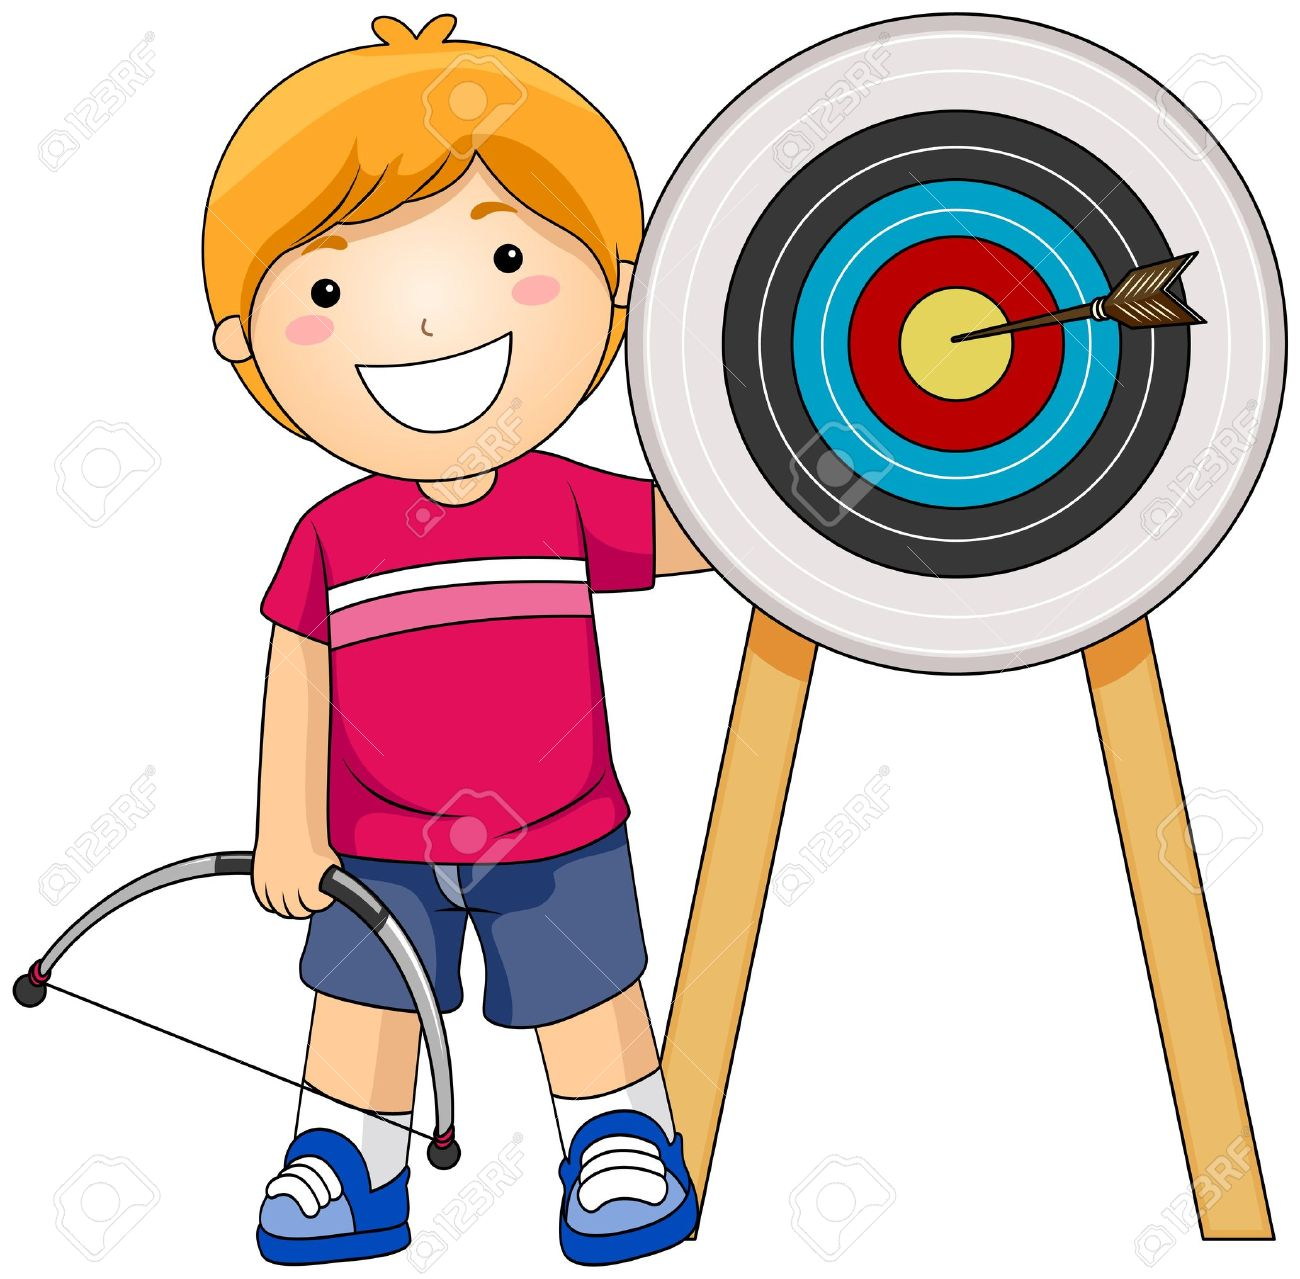 Images Of Archery | Free download on ClipArtMag